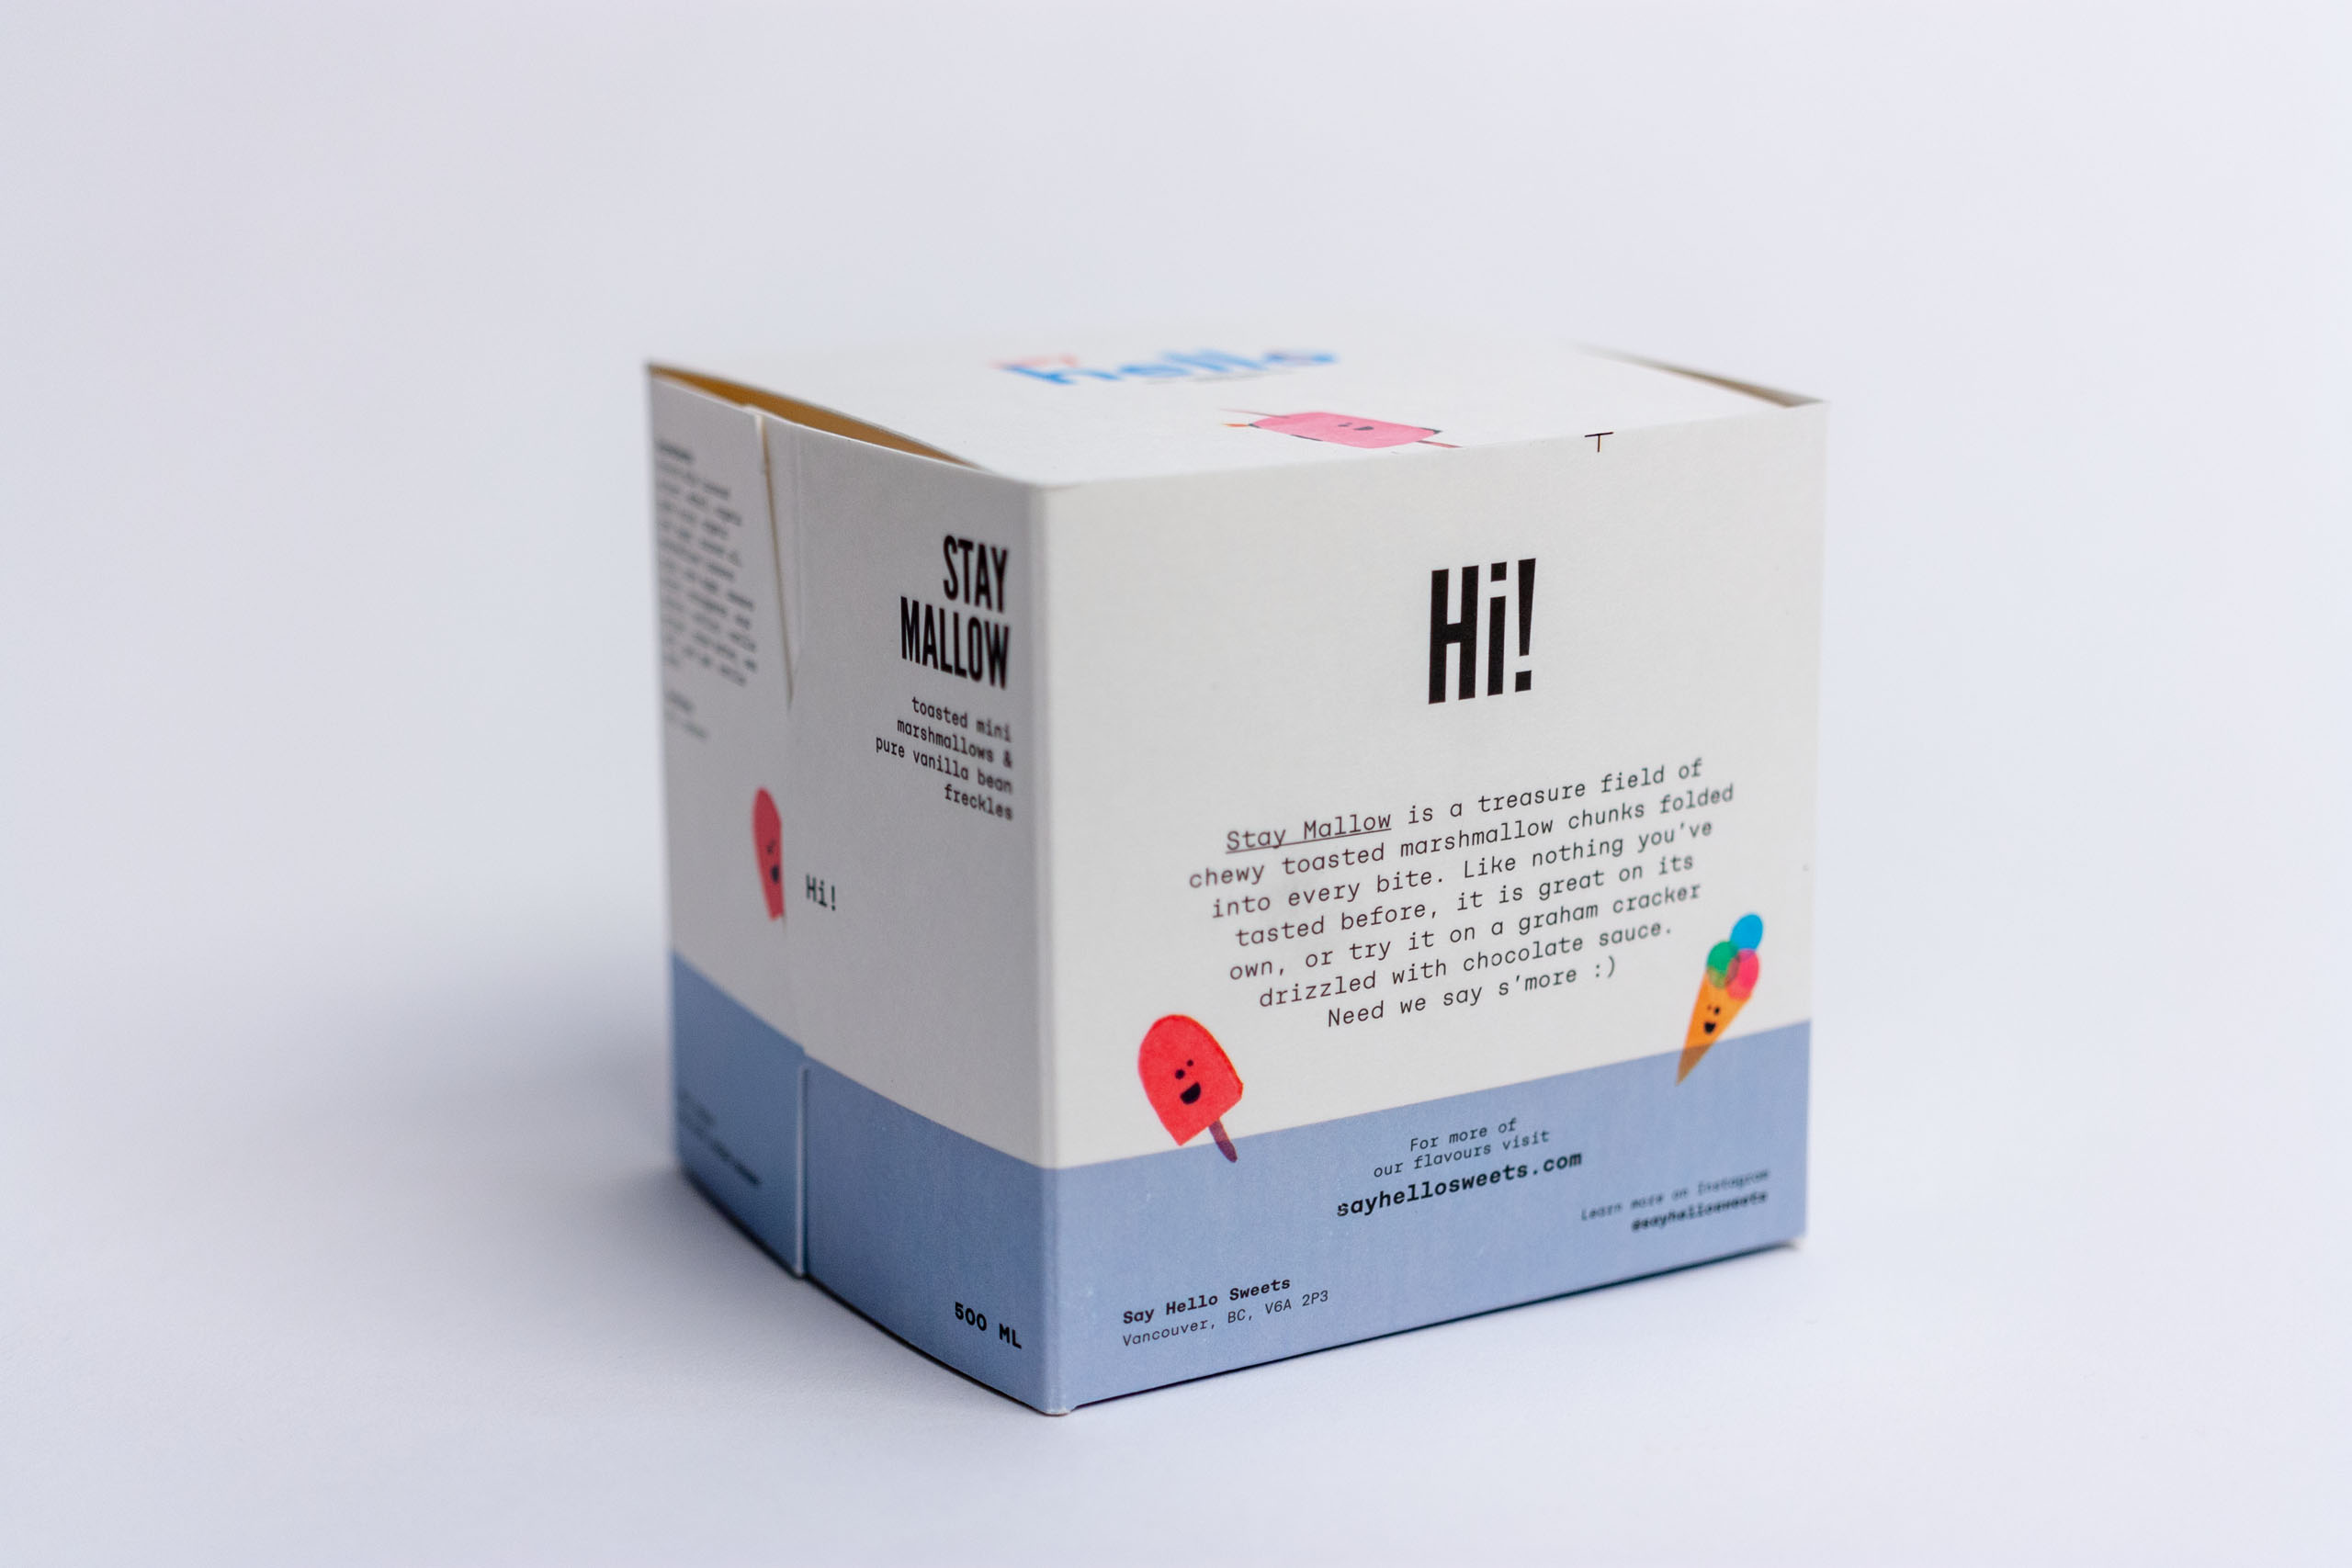 The back of the cube features flavour and recipe descriptions, flanked by colorful illustrations — by Yagnyuk.